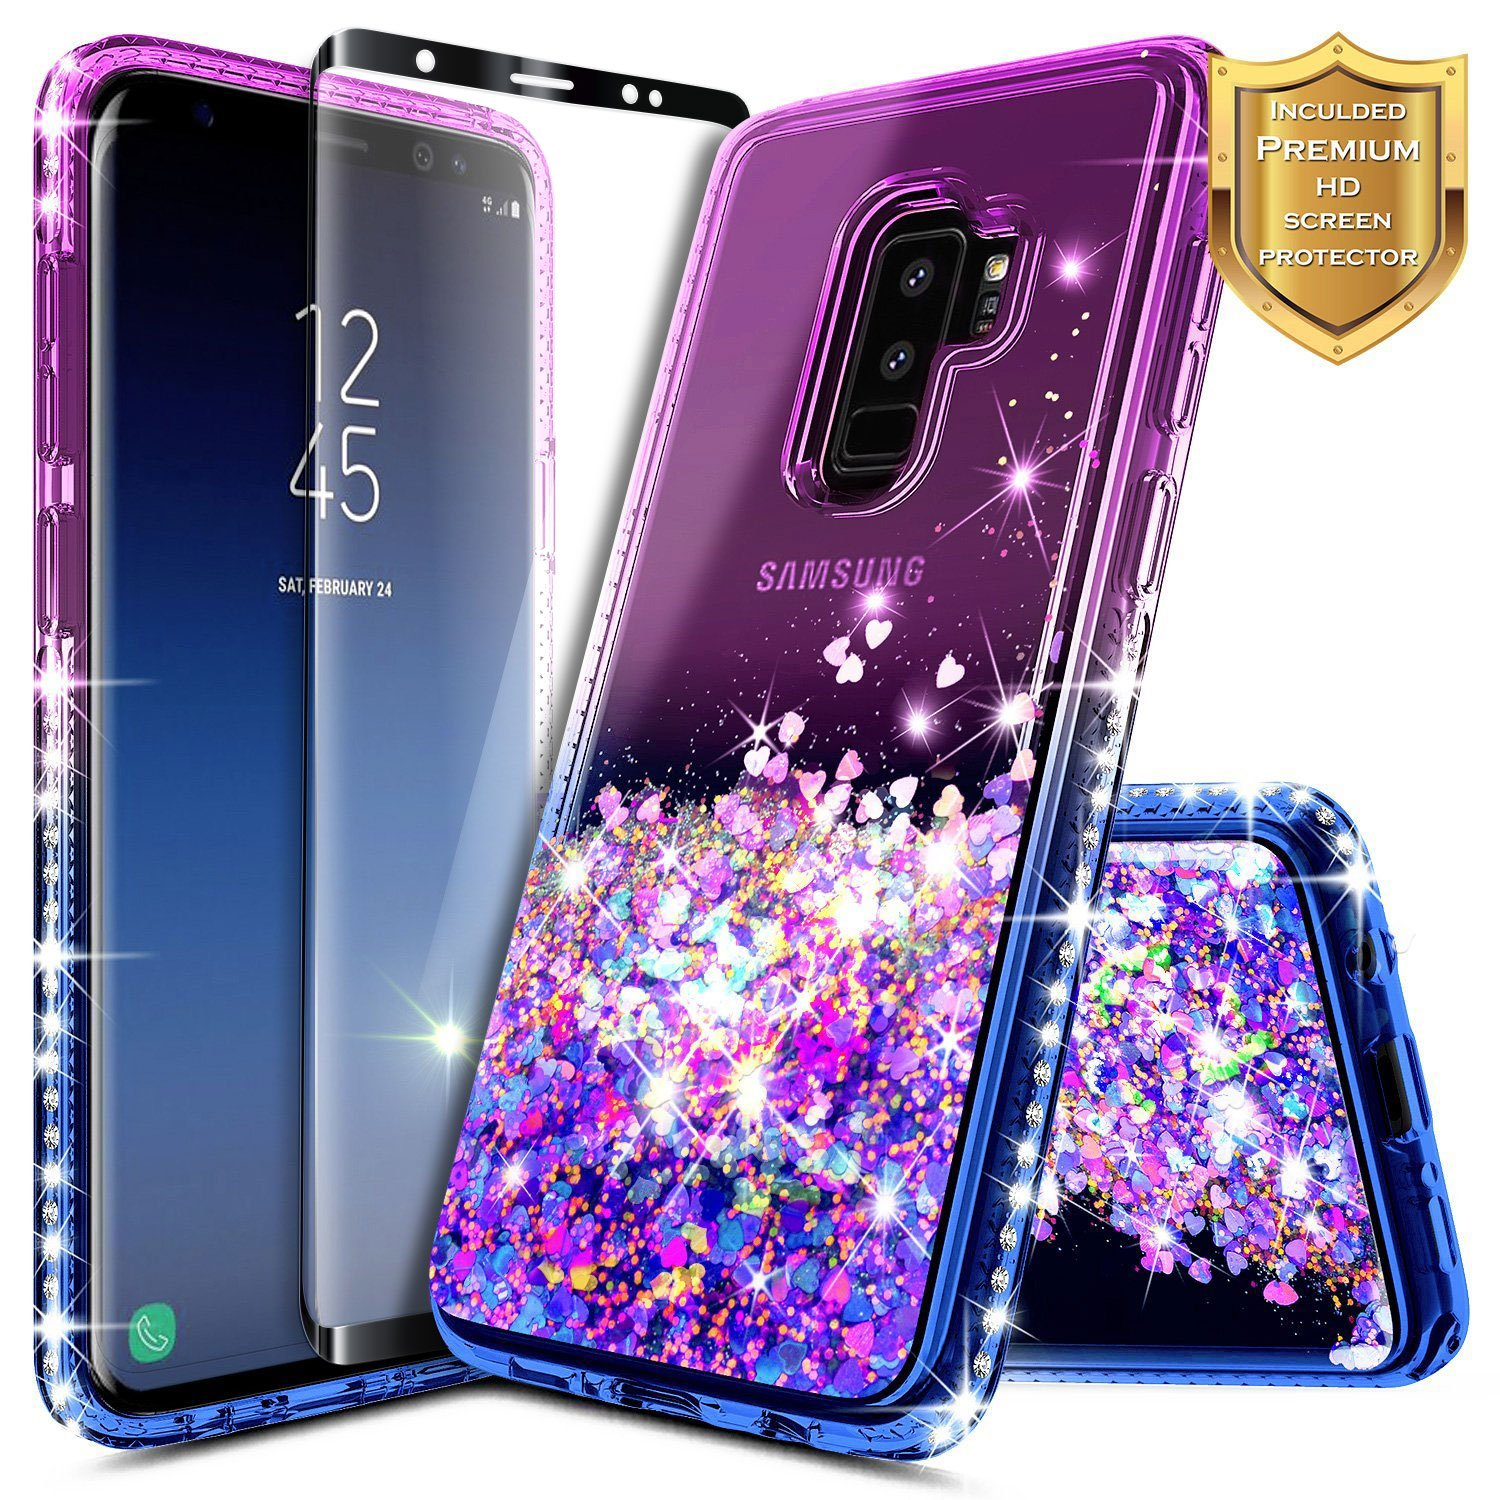 Galaxy S9 Plus Case w/[Full Coverage Screen Protector HD], NageBee Glitter Liquid Quicksand Floating Shiny Sparkle Flowing Bling Diamond Luxury Clear Cute Case For Samsung Galaxy S9 Plus -Purple/Blue